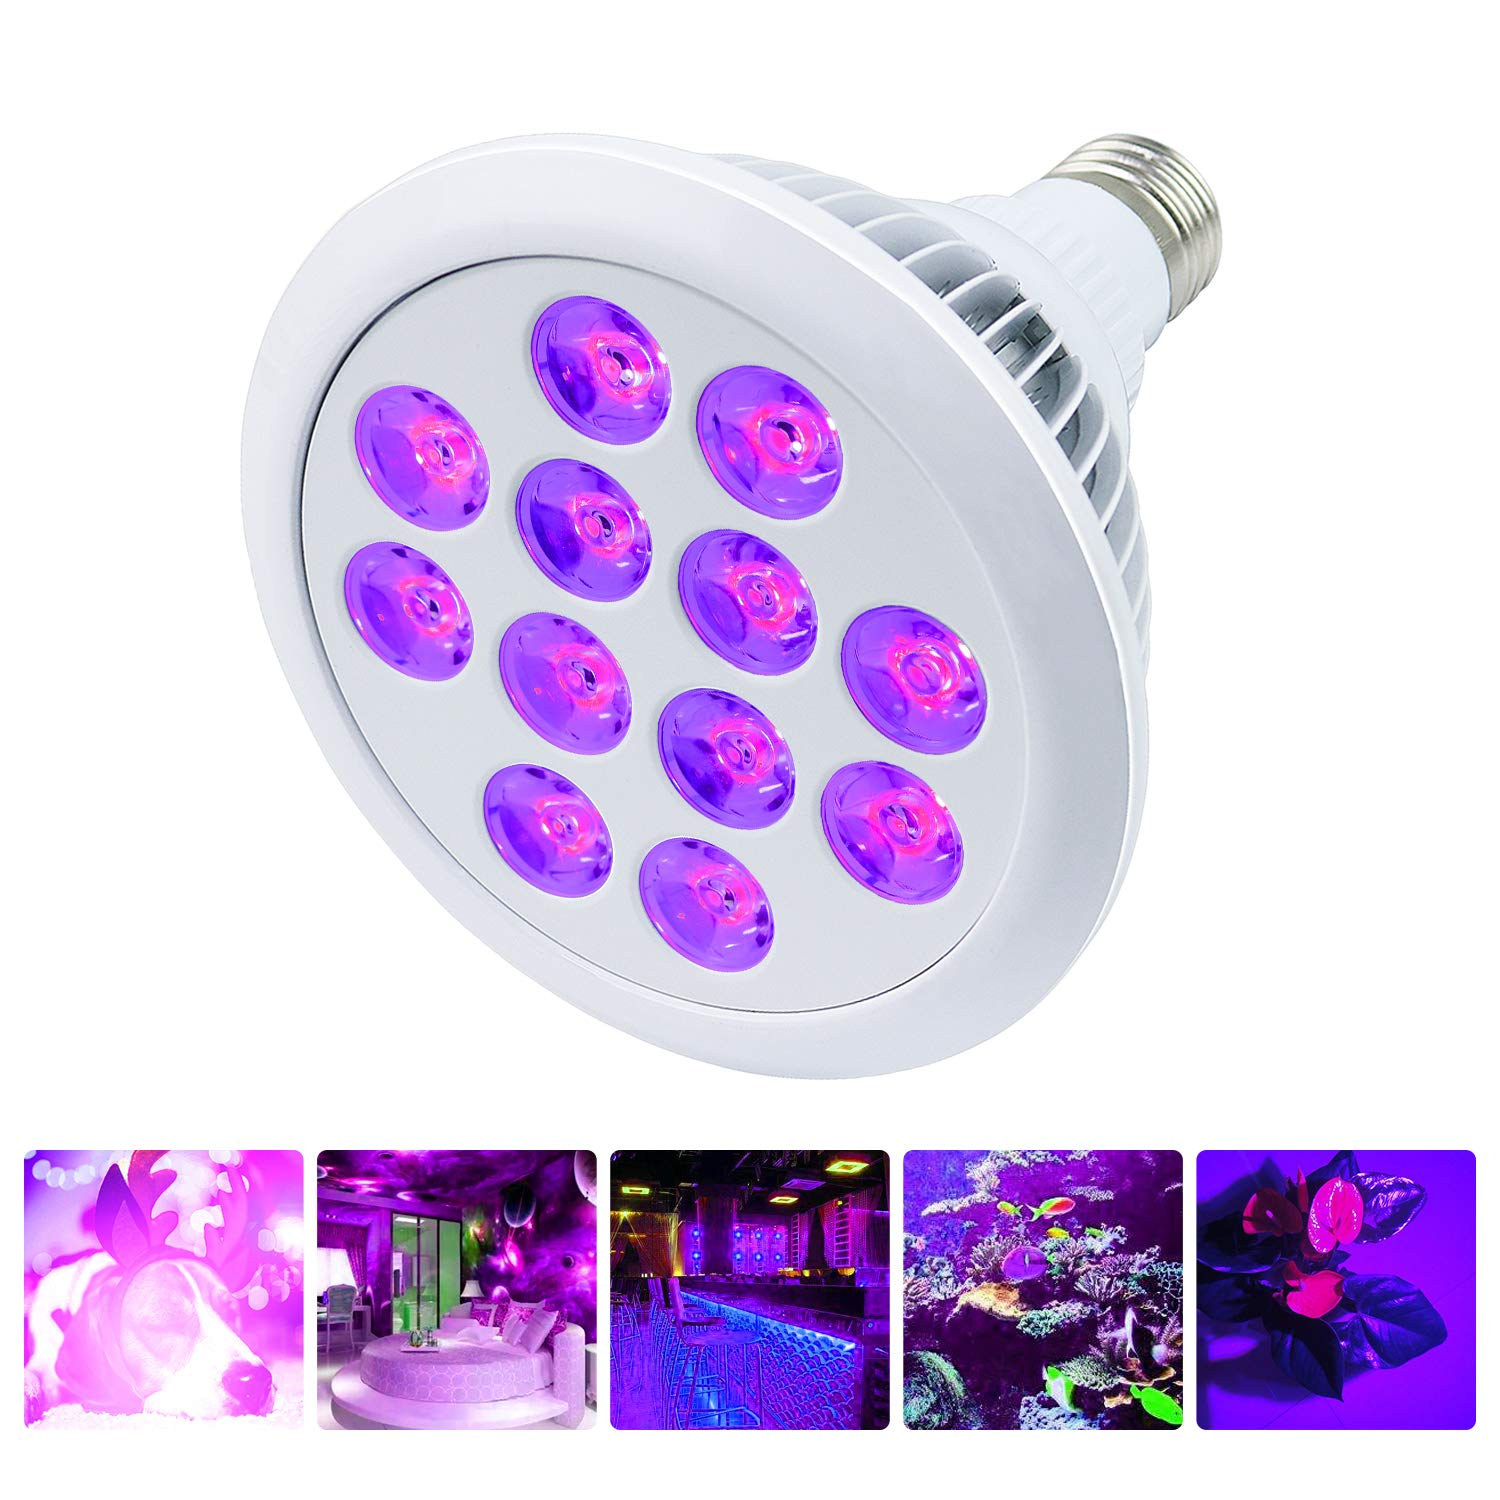 UV LED Black Light Bulb,Mrhua Bulb E26 E27 PAR38 Super Bright 24W UV Blacklight for Home Party, Stage Lighting,Neon Glow, Blacklight Party, Stage Lighting, Fluorescent Effect Wedding Lighting Mrhua LED